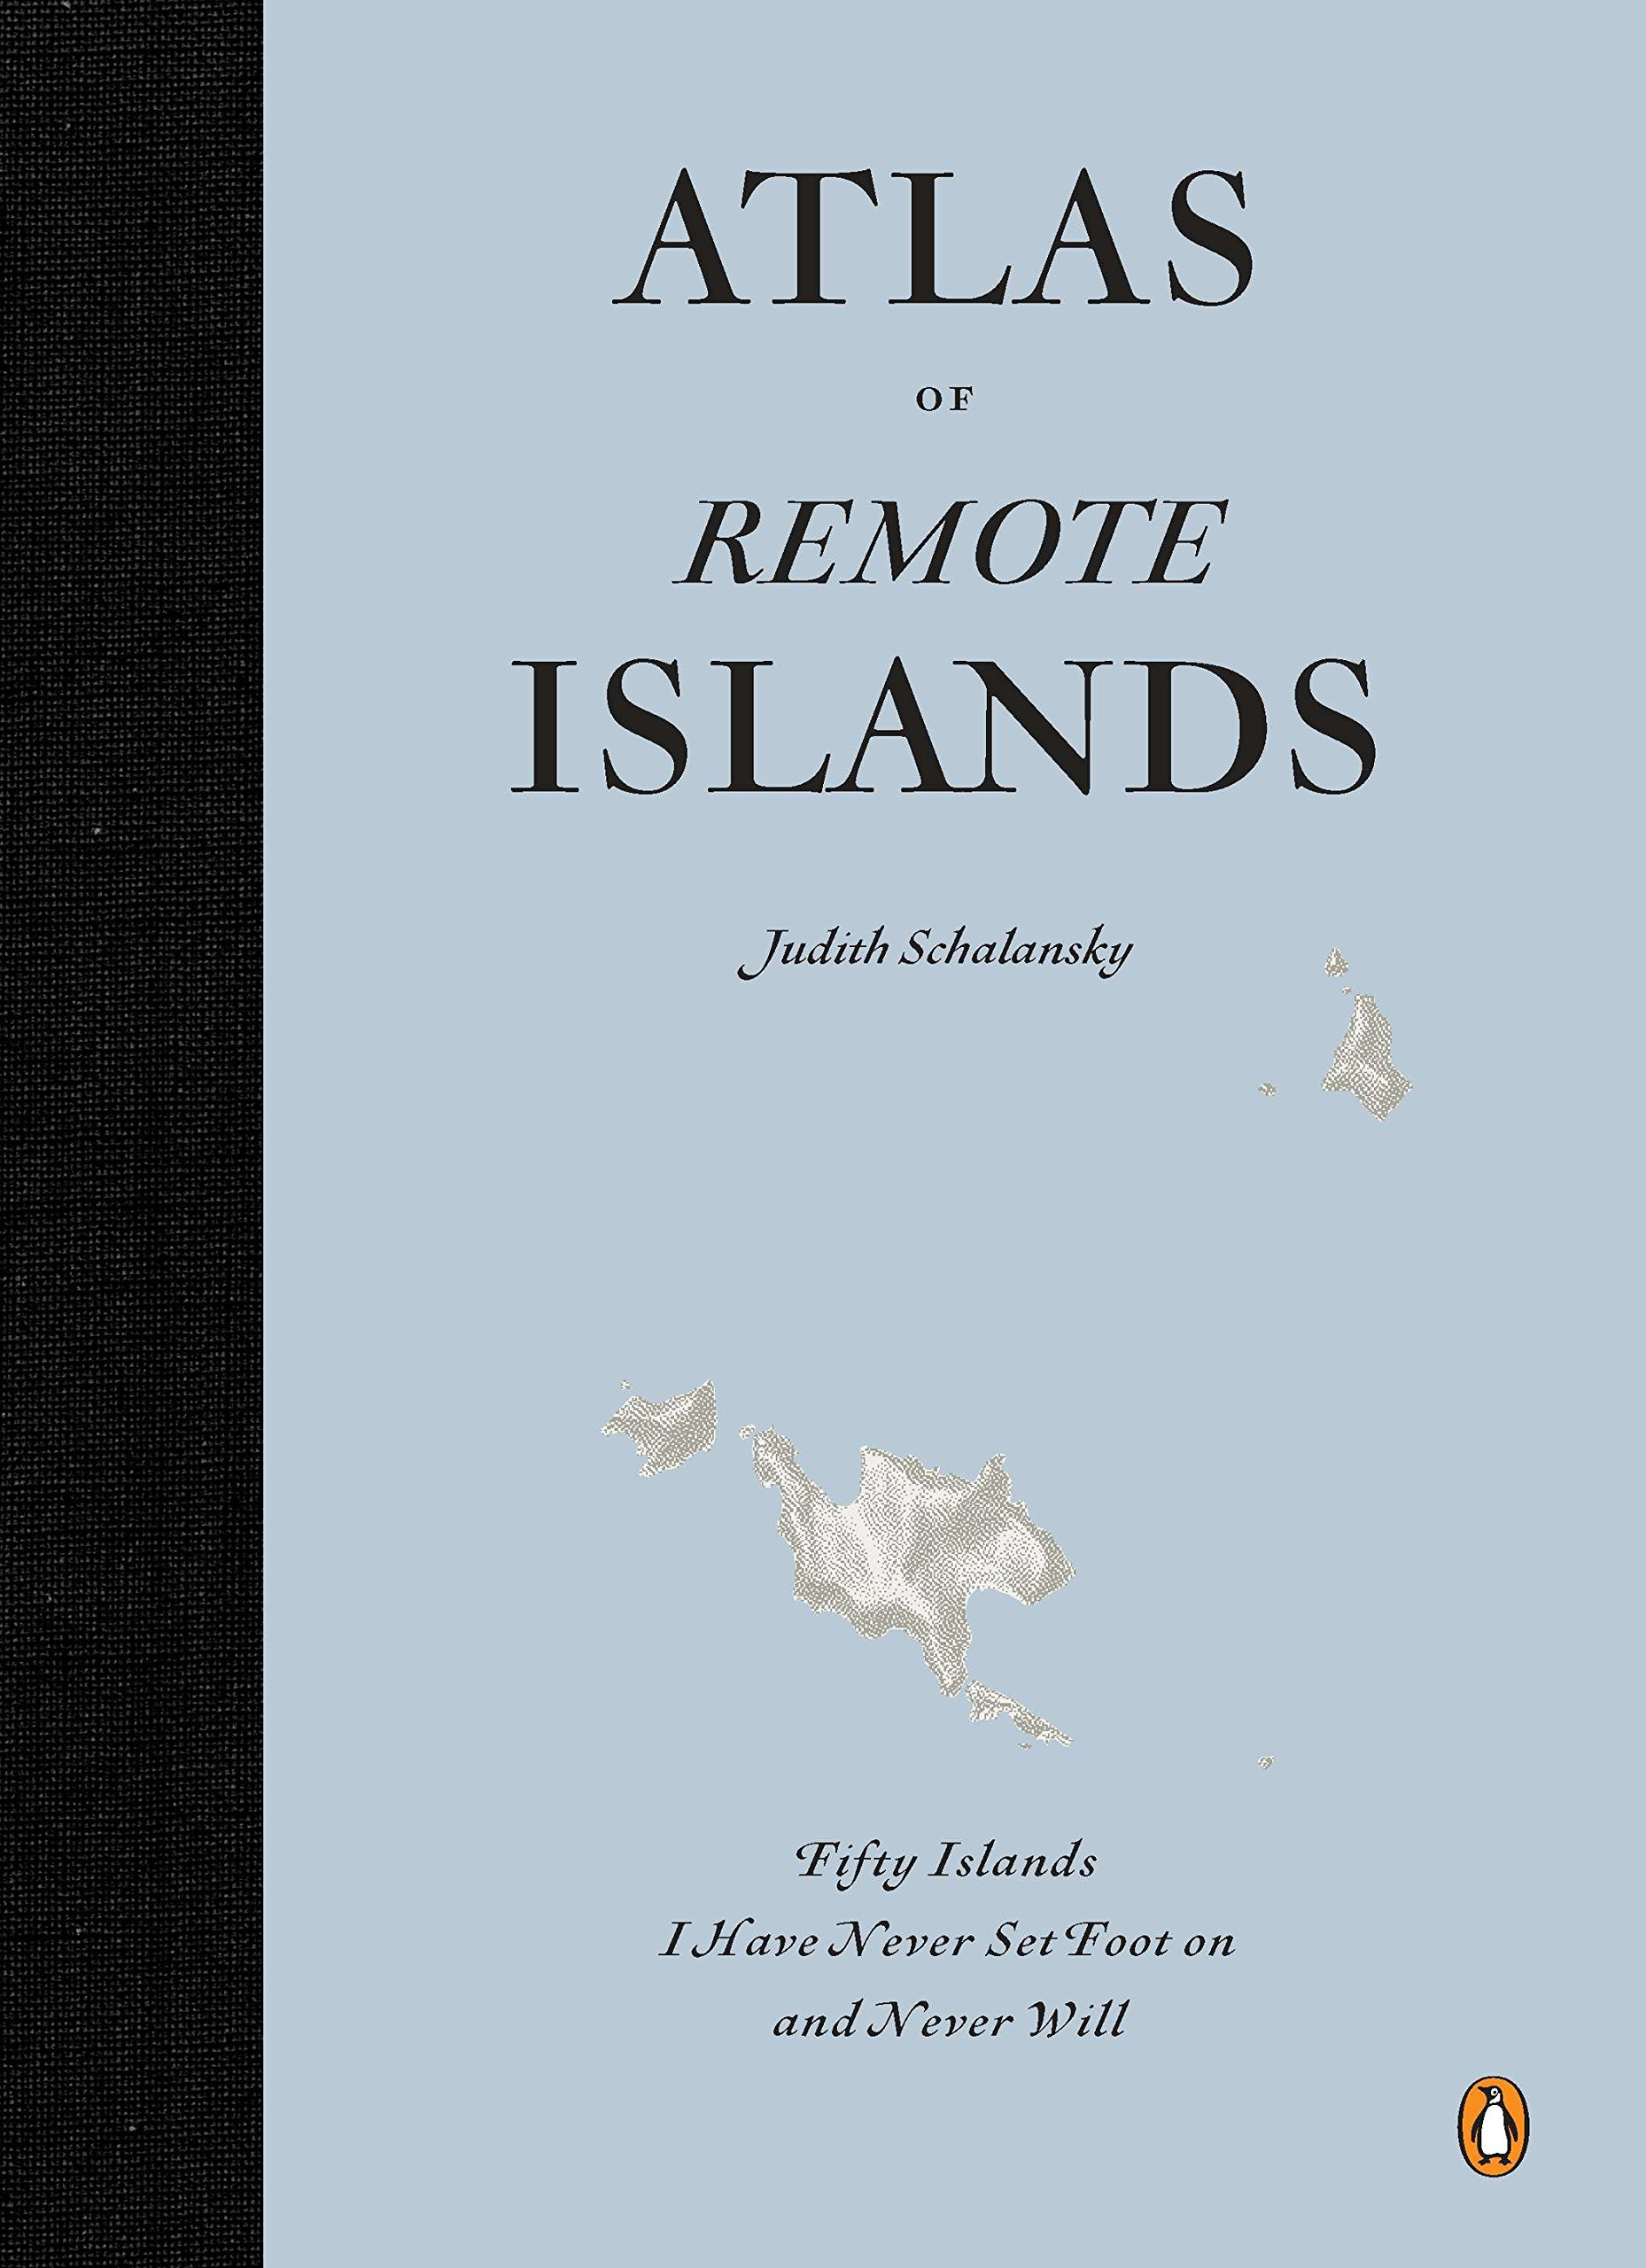 Atlas of Remote Islands: Fifty Islands I Have Never Set Foot On and Never Will